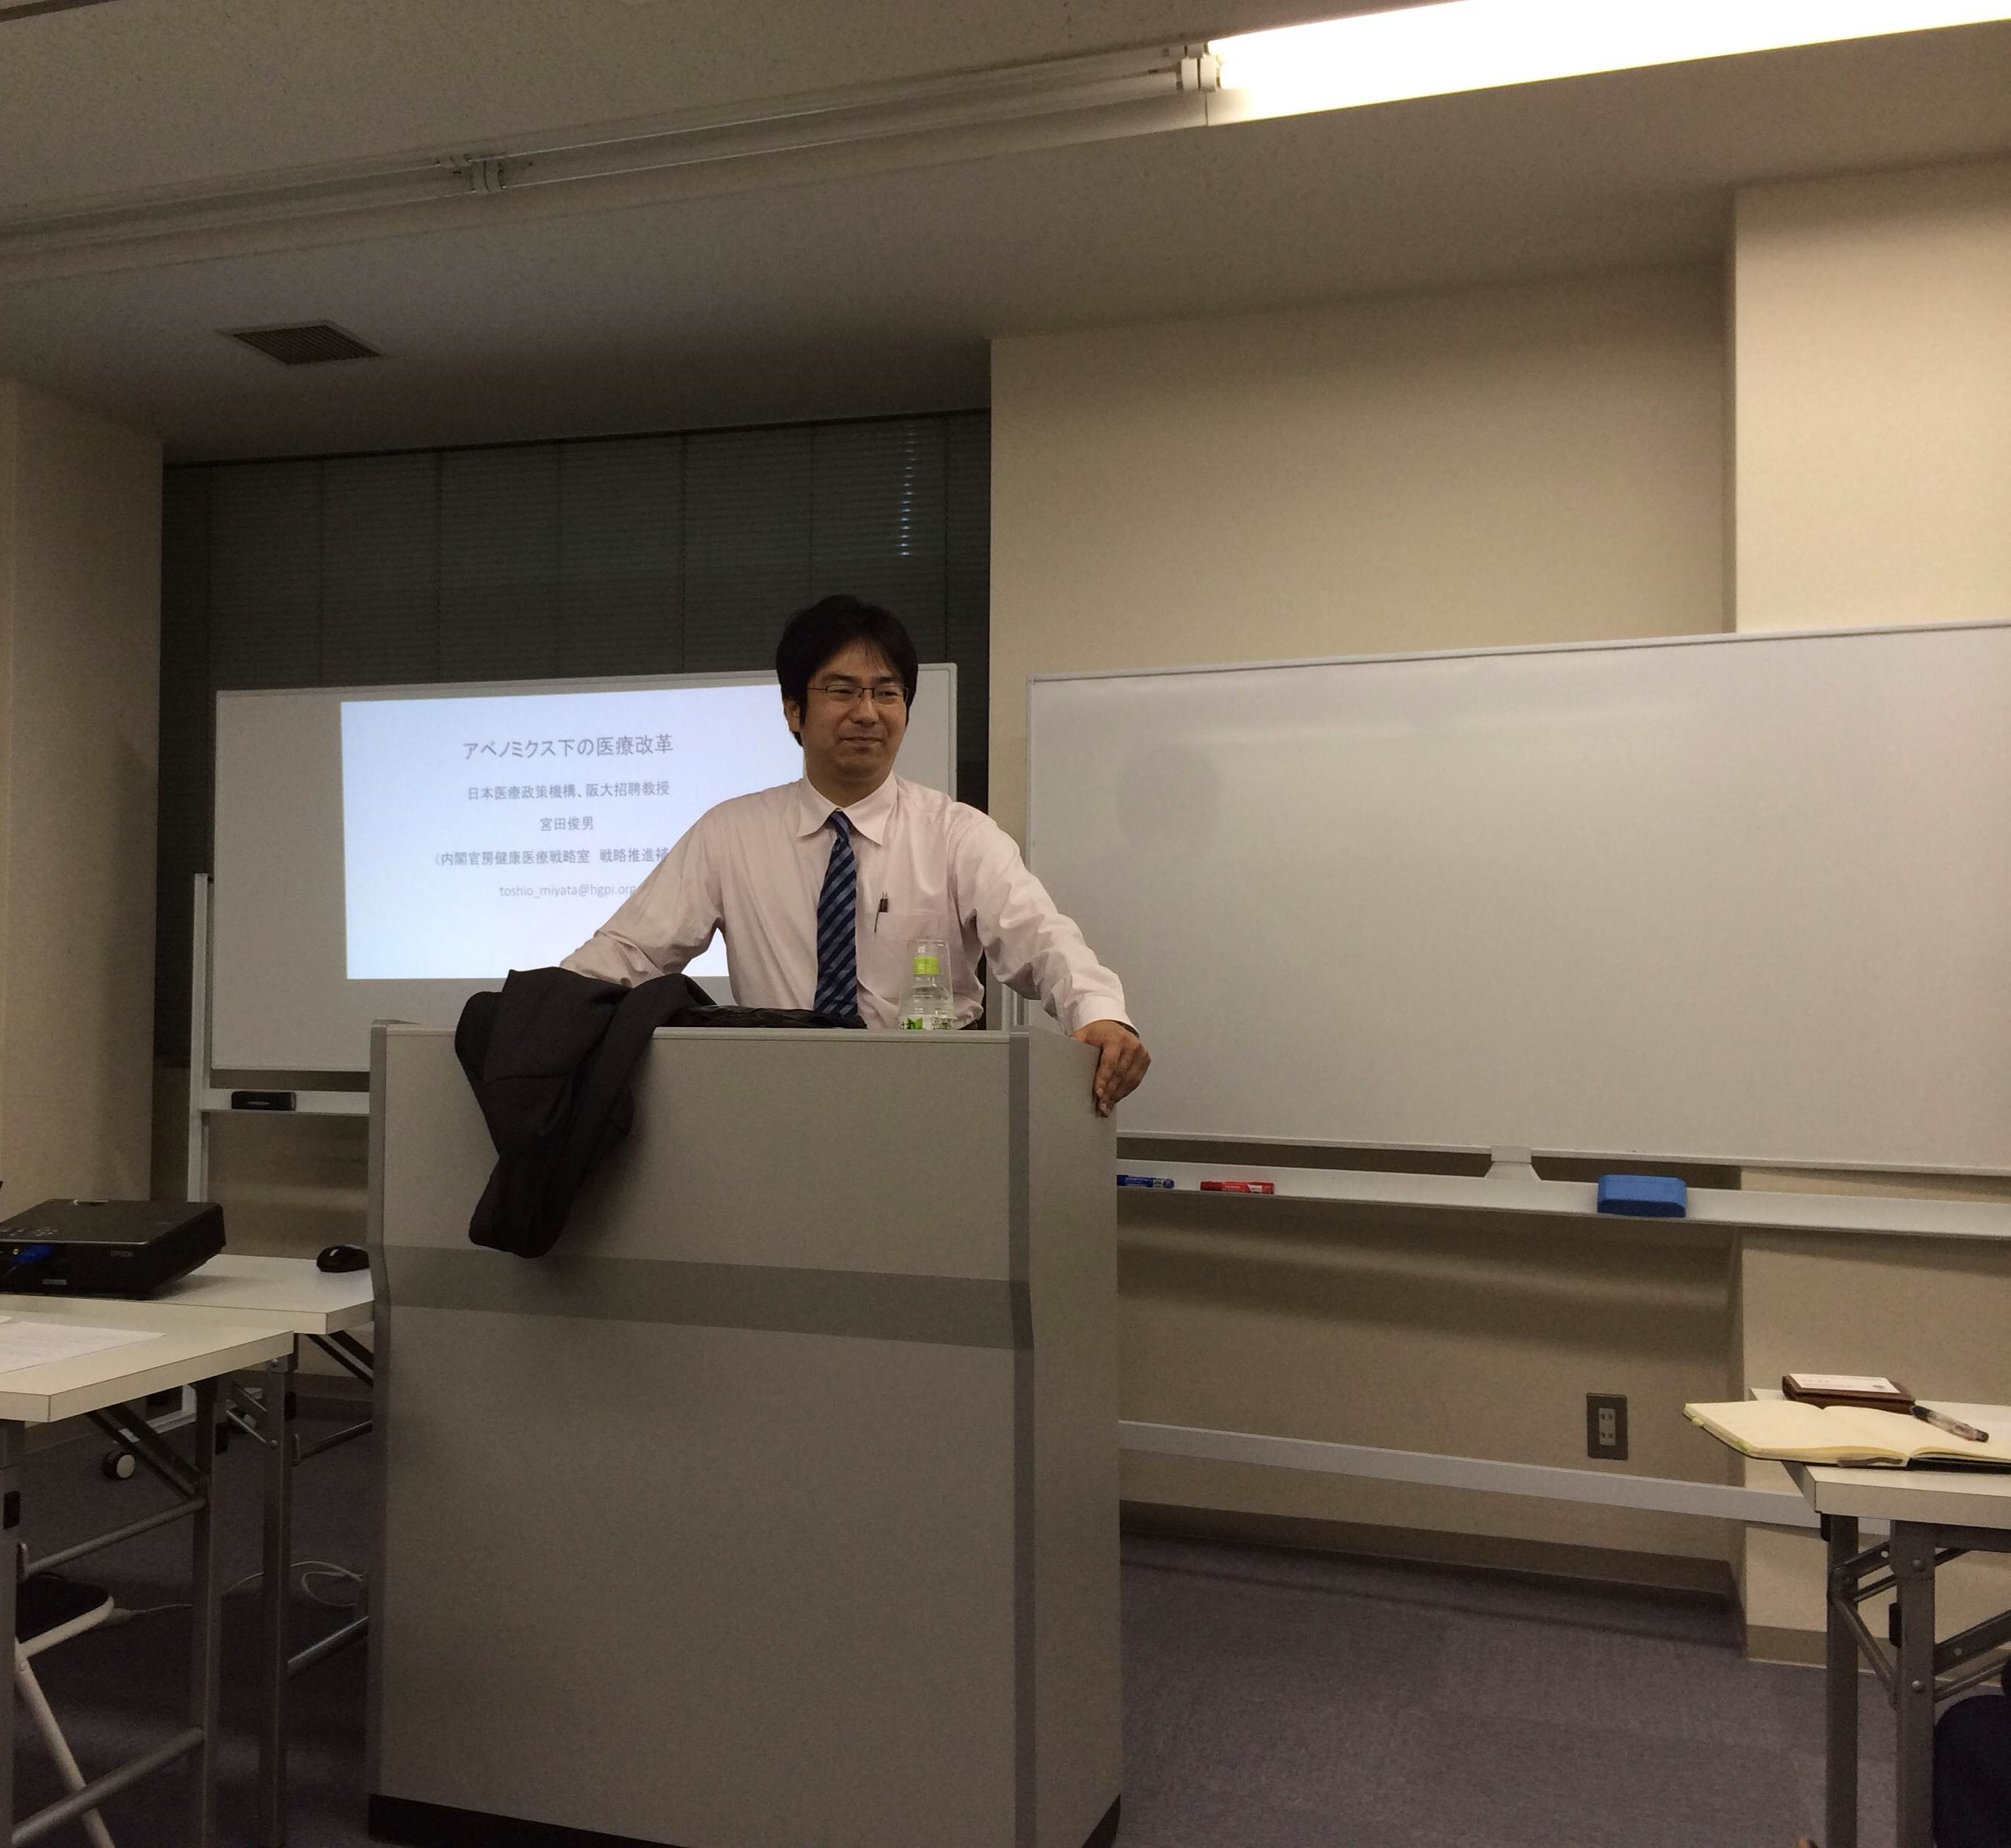 (Event Report) Lecture Series featuring Dr. Toshio Miyata at Aoyama Shachu